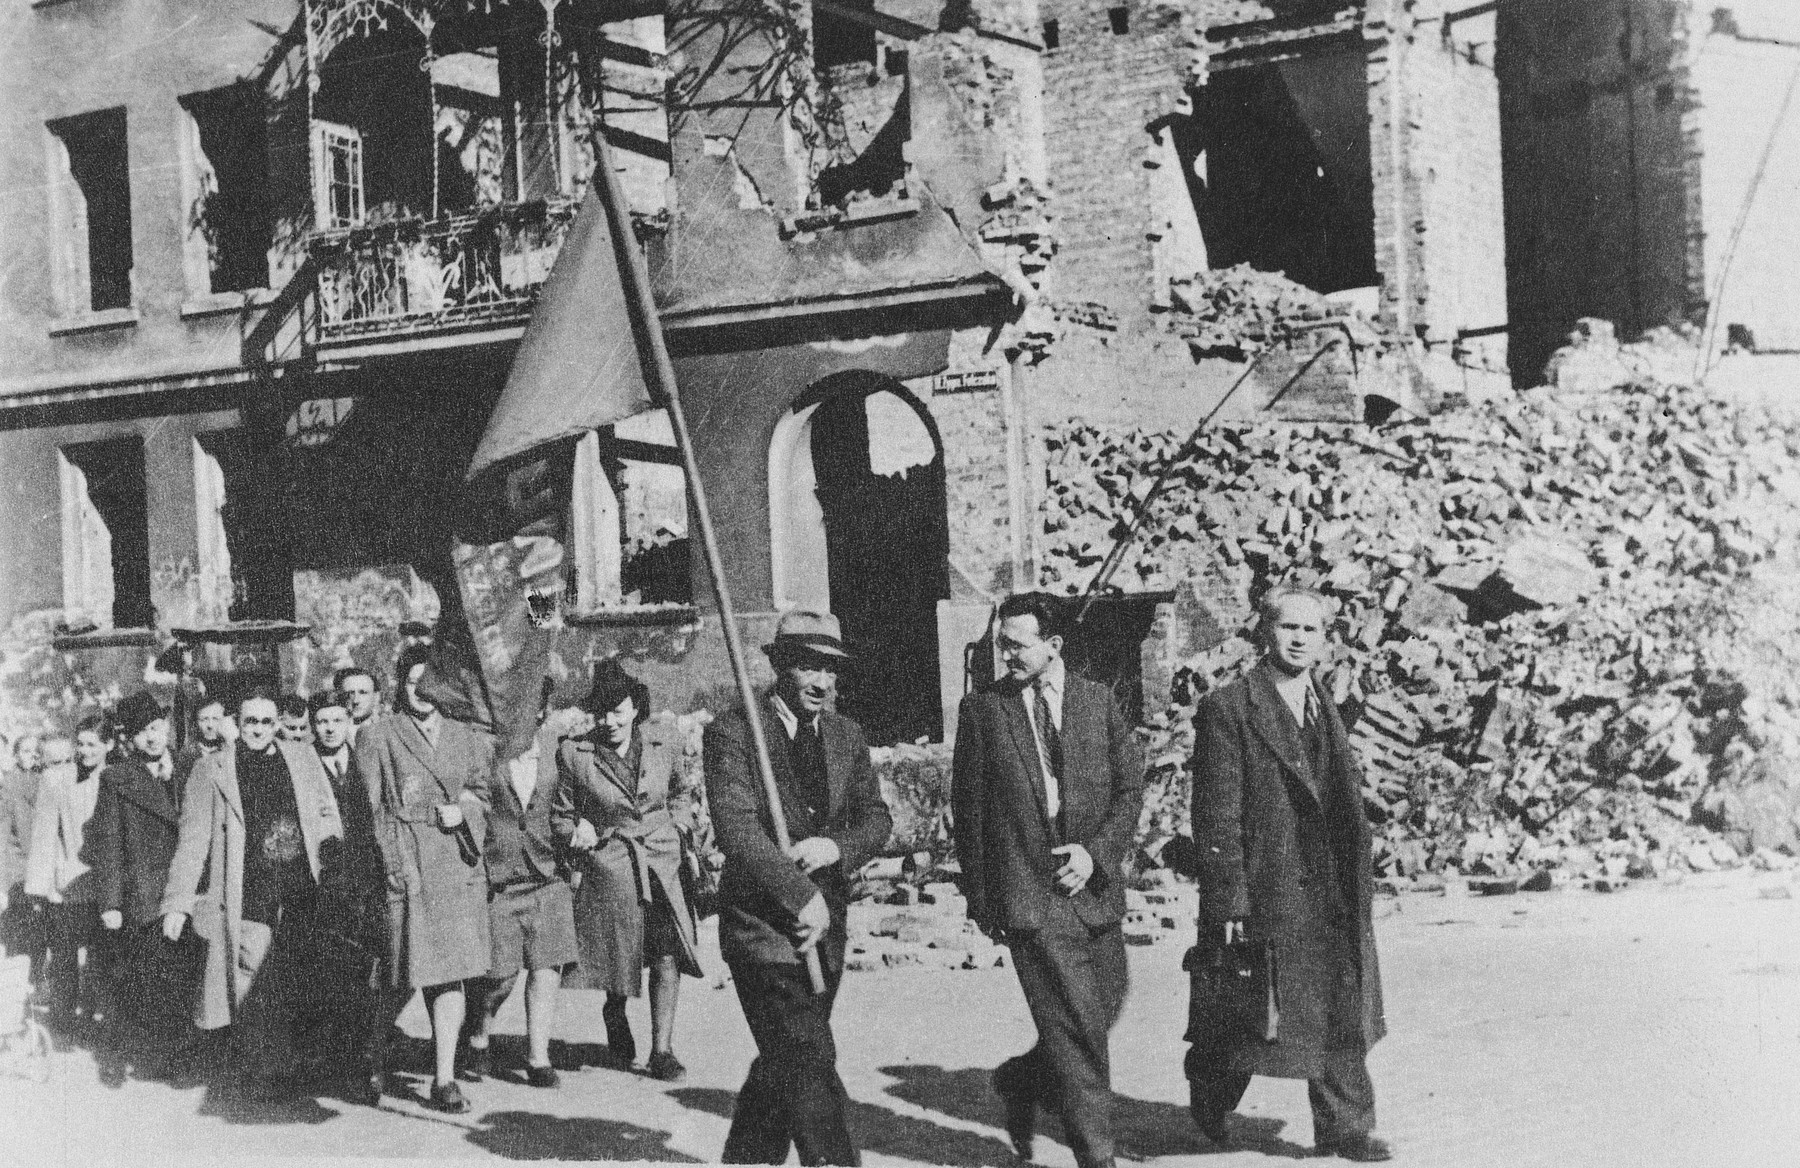 Jewish survivors march in a May Day parade in the bombed-out ruins of Szczecin.